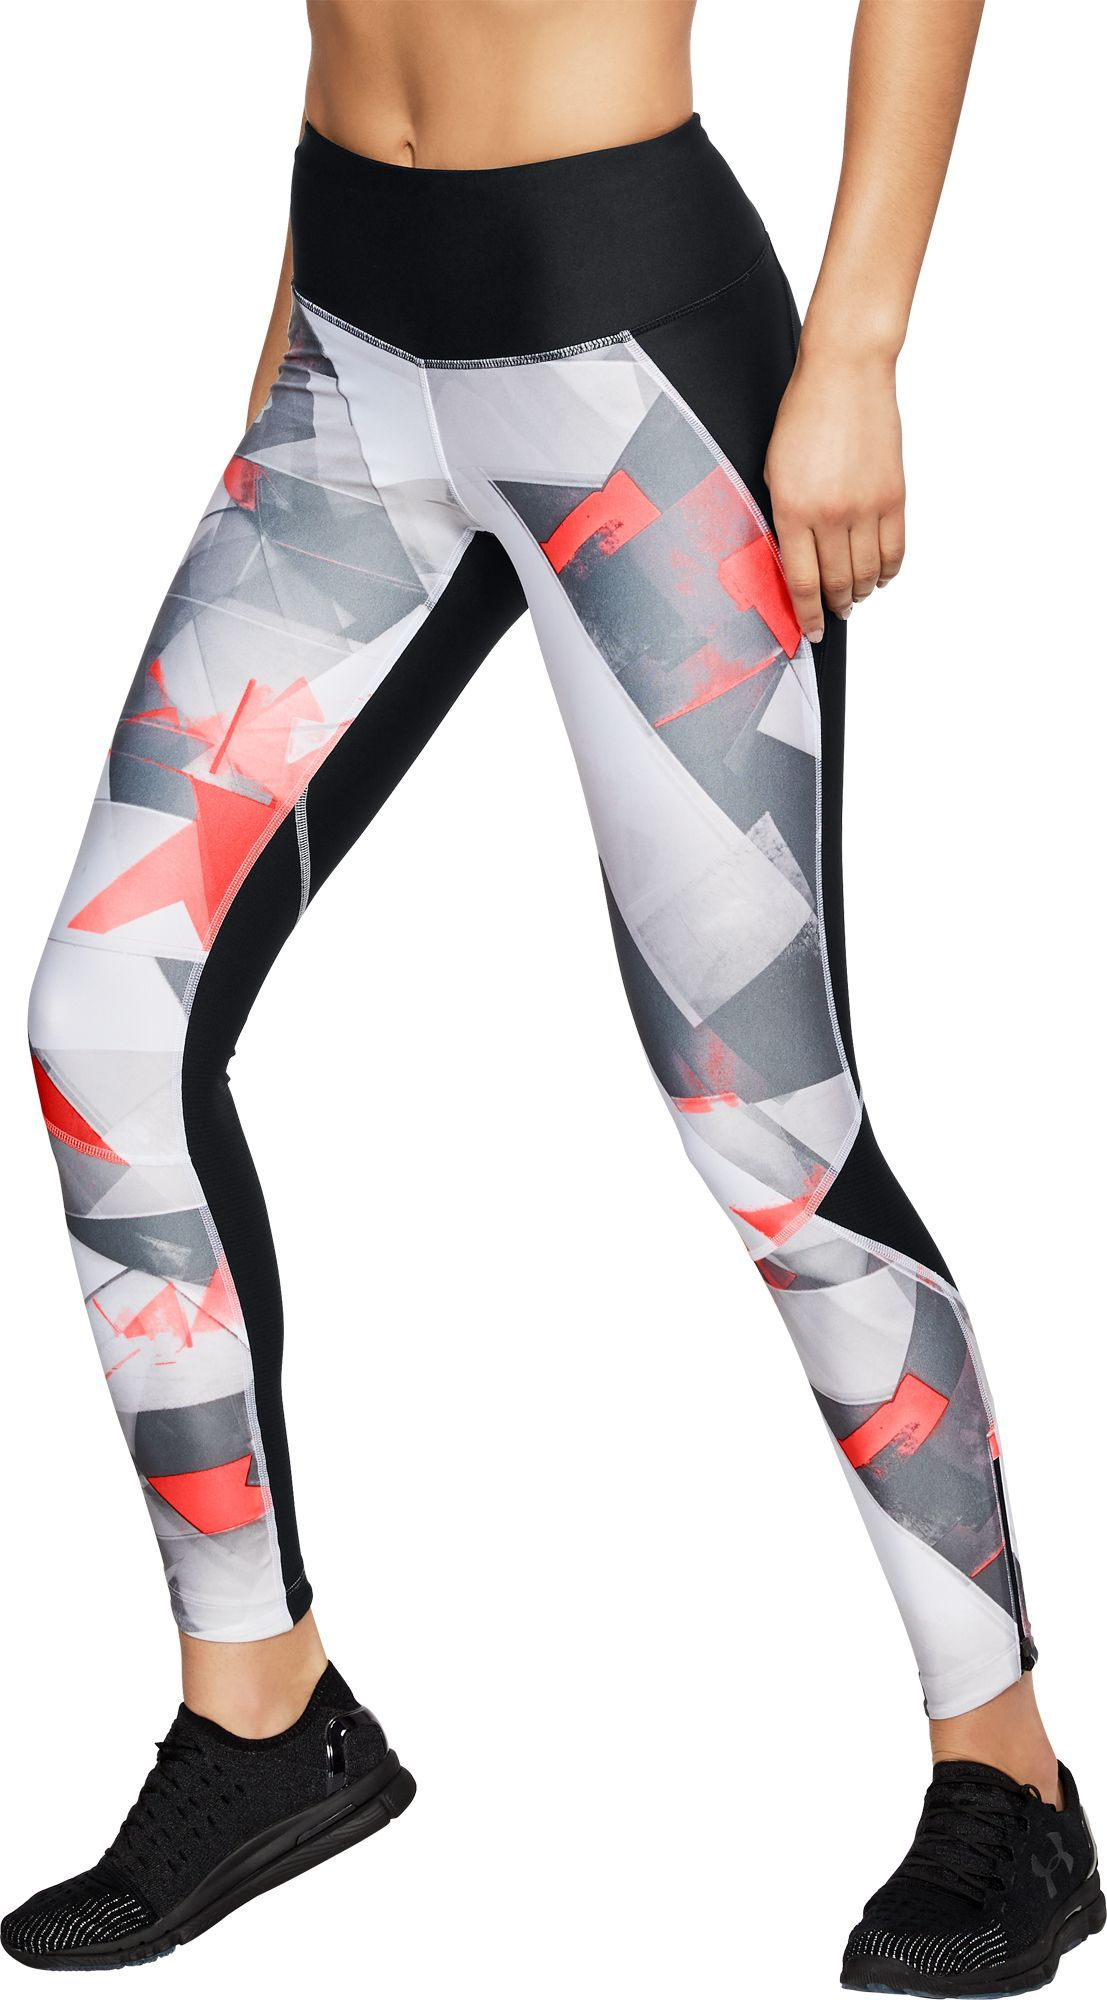 70417f86b5b8f Under Armour Women's Fly Fast Printed Running Tights, Size: Medium, Black